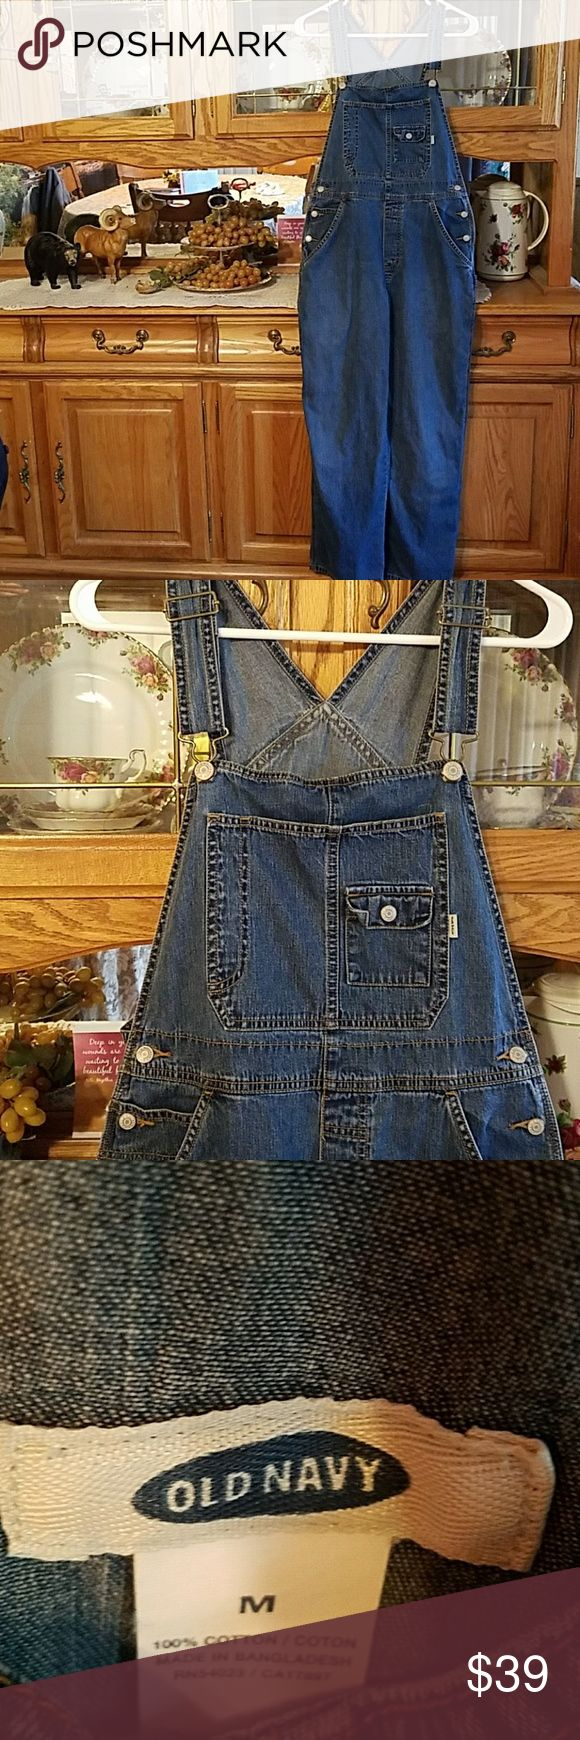 OLD NAVY OVERALLS OLD NAVY OVERALLS  SIZE MEDIUM ADORABLE.... Old Navy Jeans Overalls